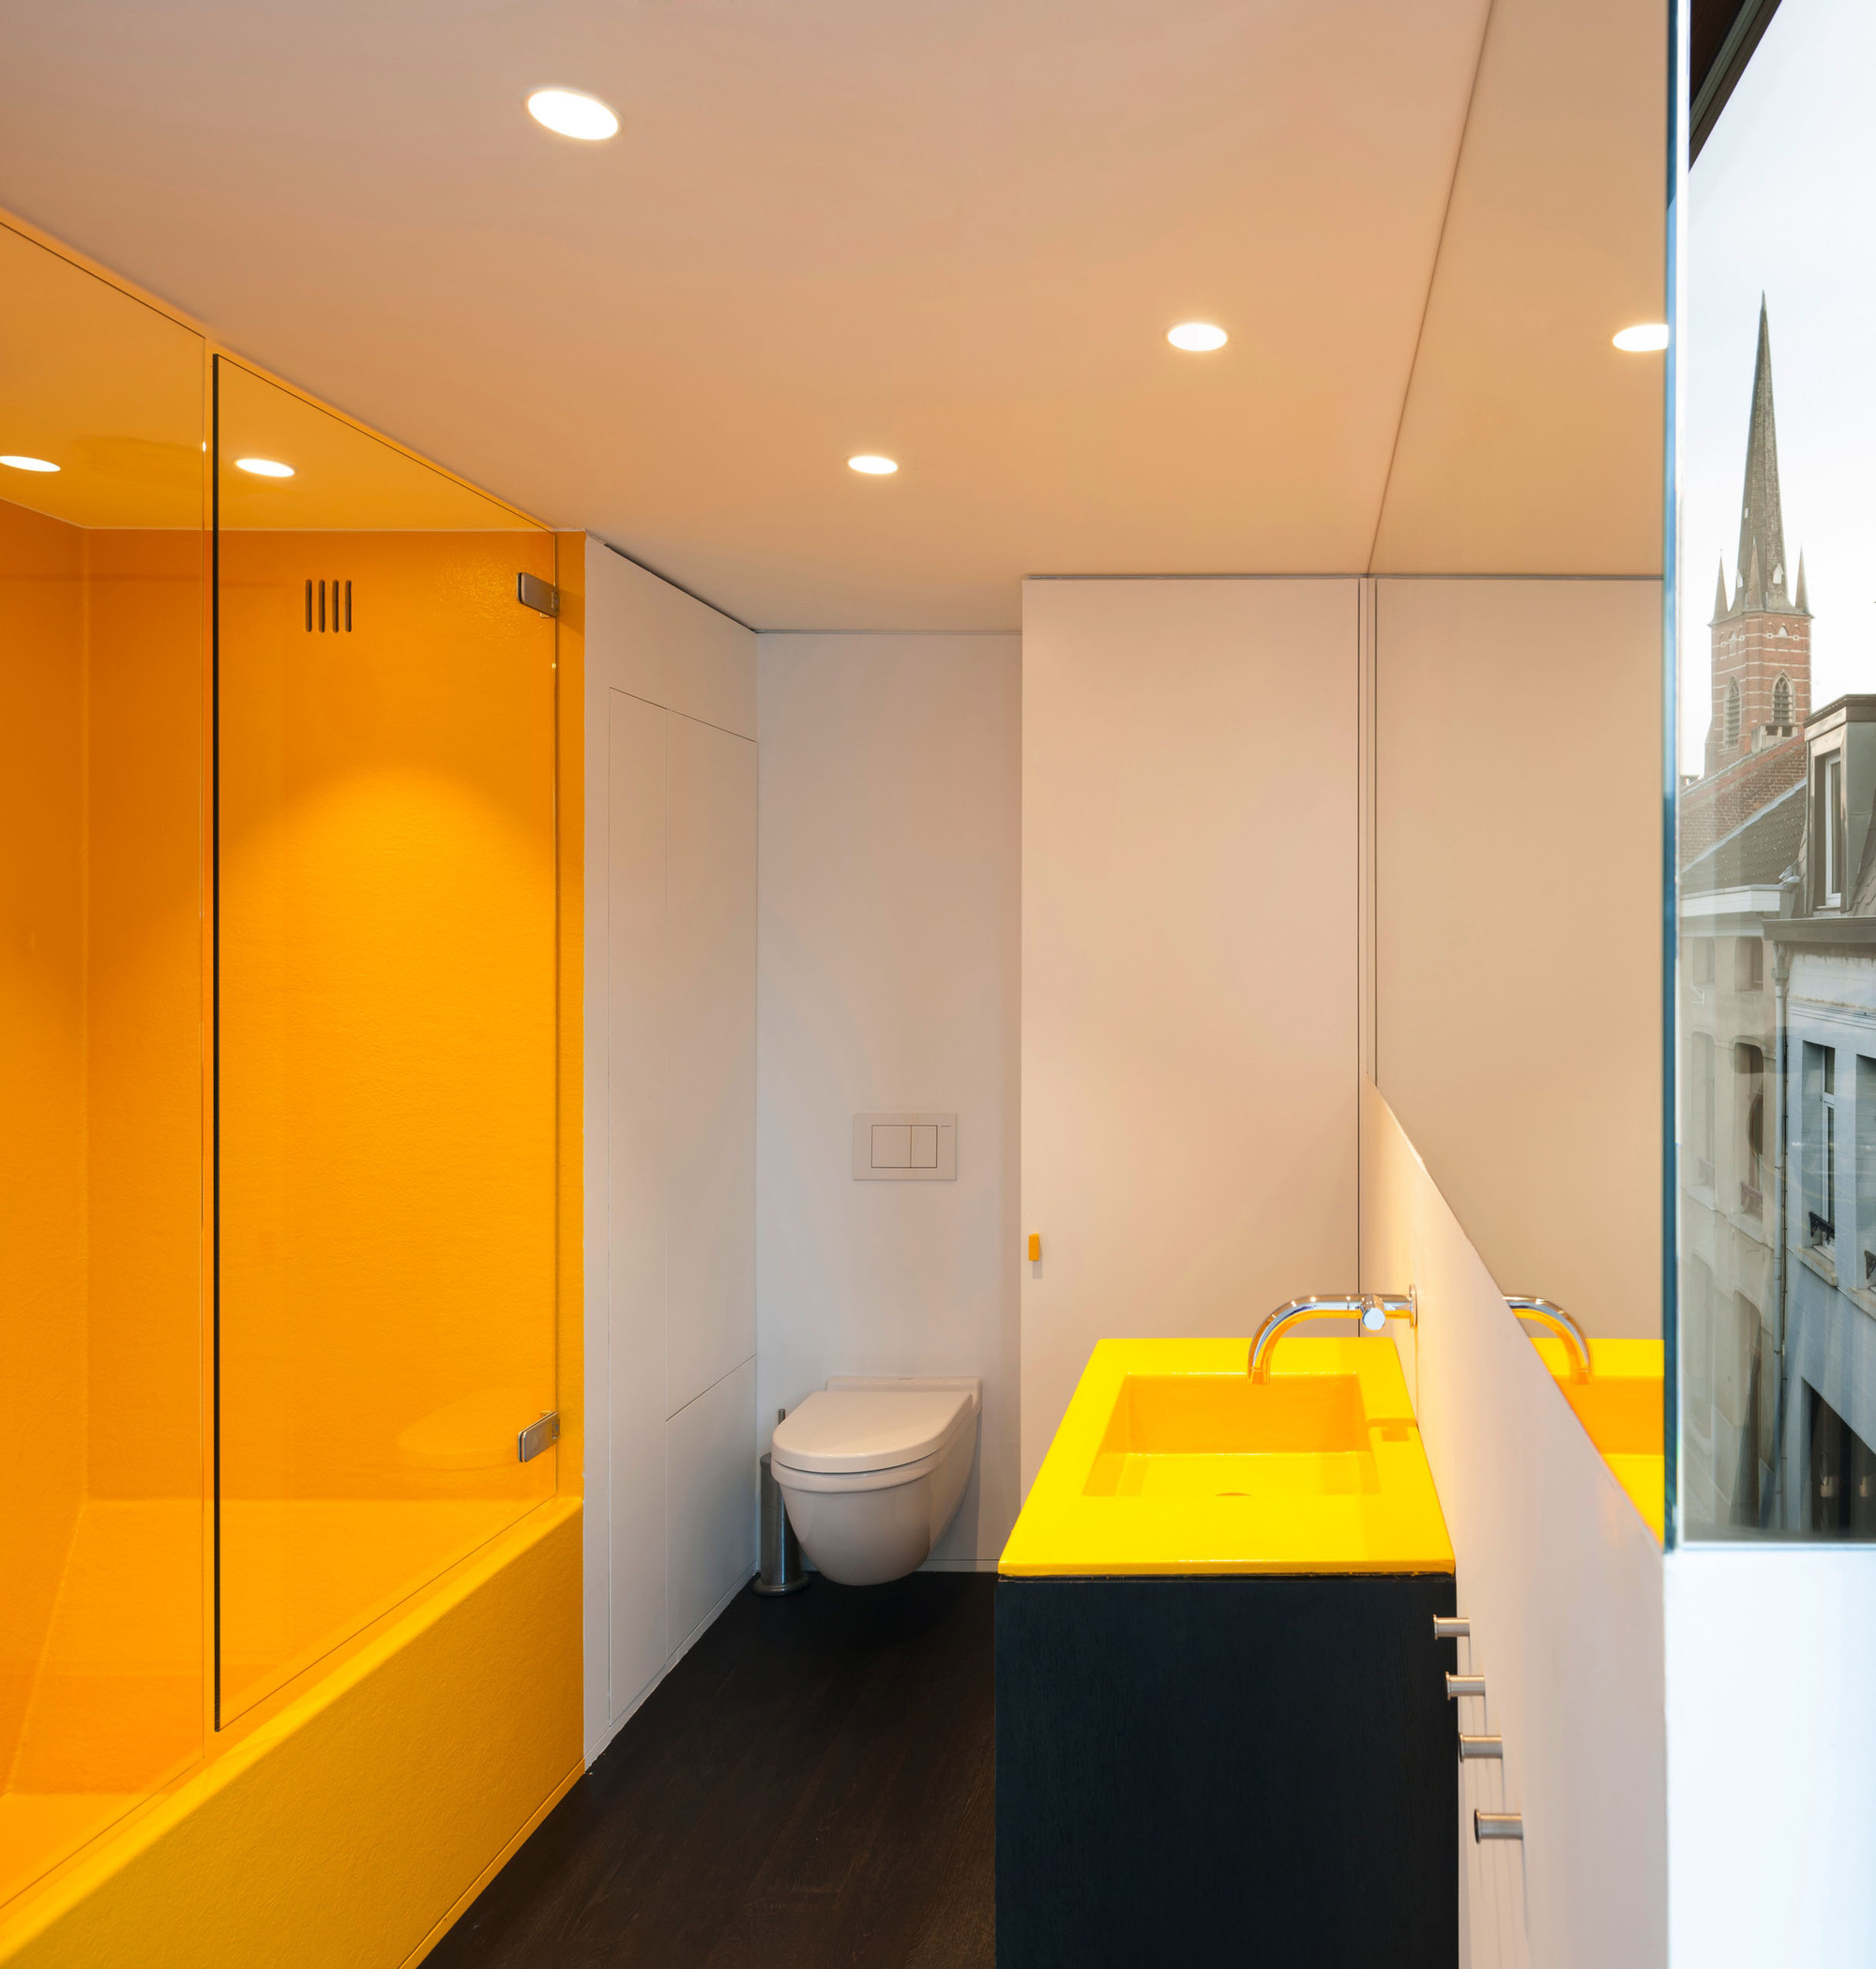 Idea Salle De Bain Modern Crisp Lines In Yellow - Interiors By Color